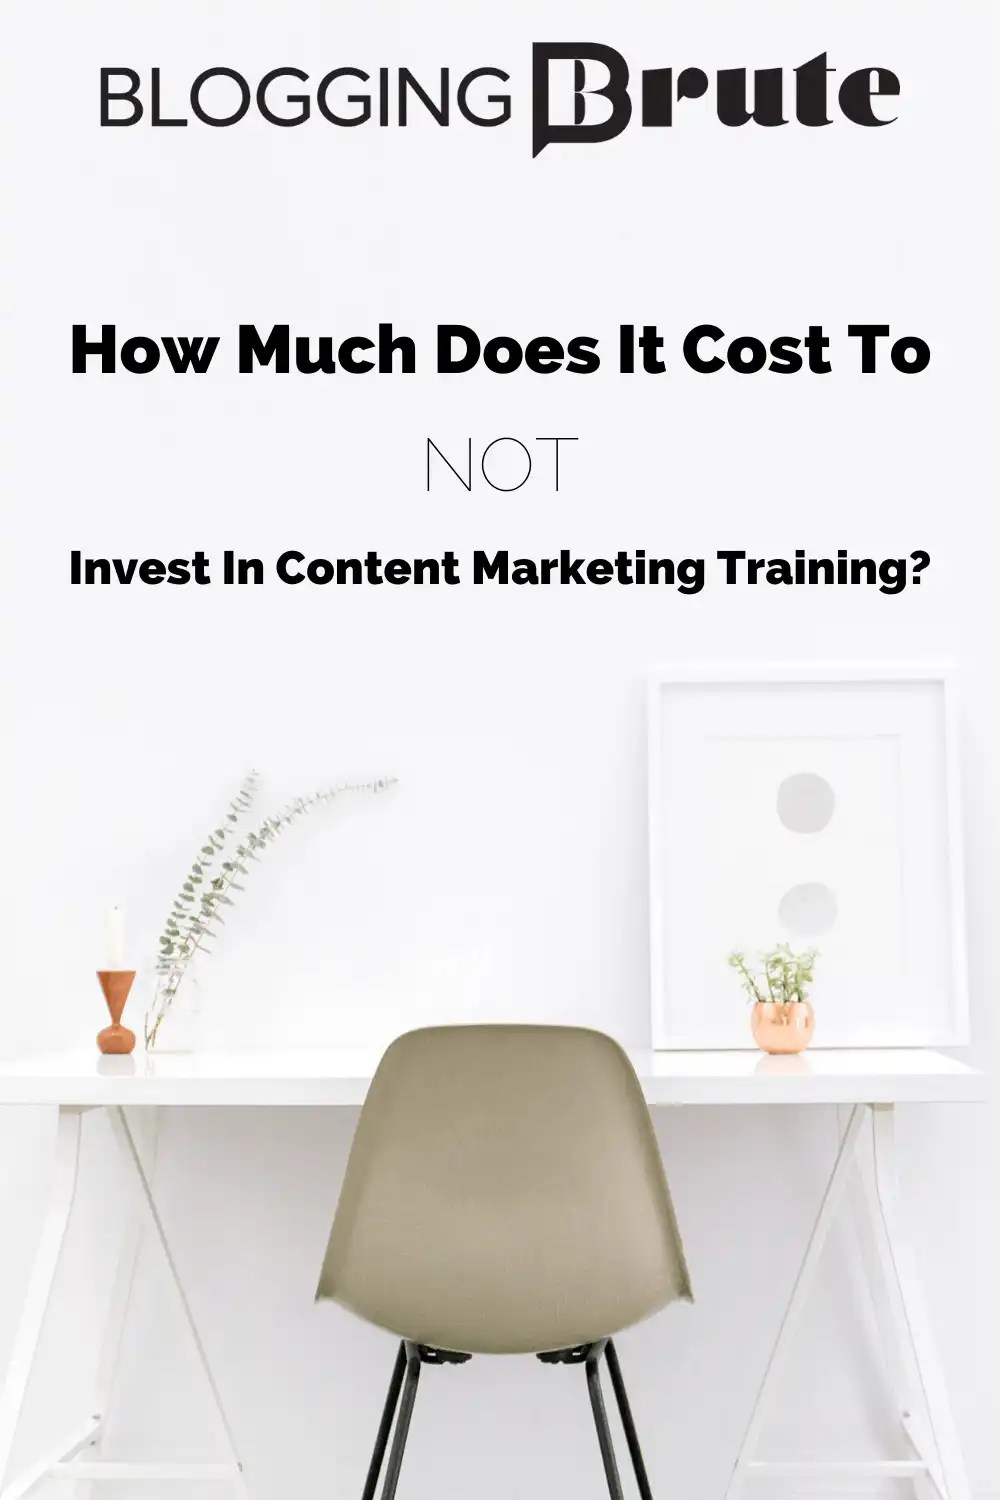 How much does it cost to NOT invest in Content Marketing Training? #ContentMarketing #BloggingTips #ContentMarketingTraining